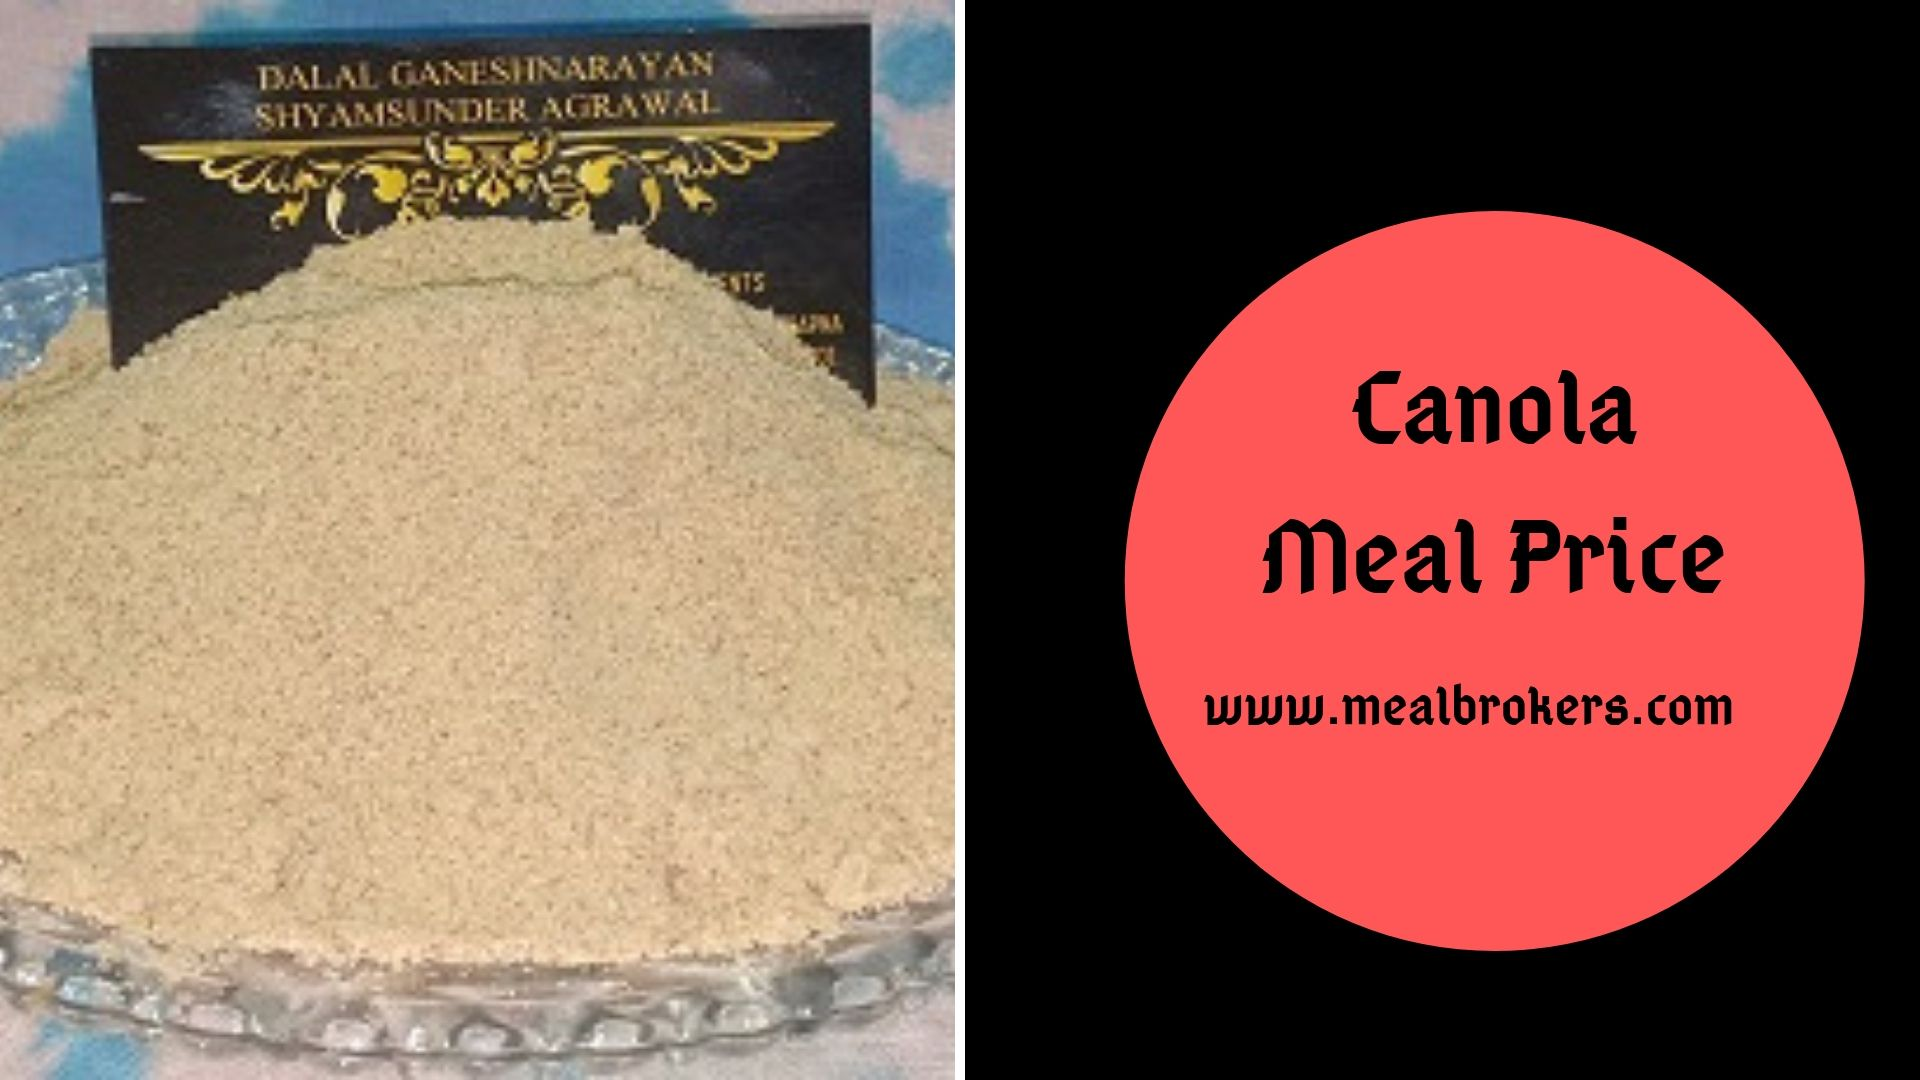 Find canola meal at the most affordable prices protein